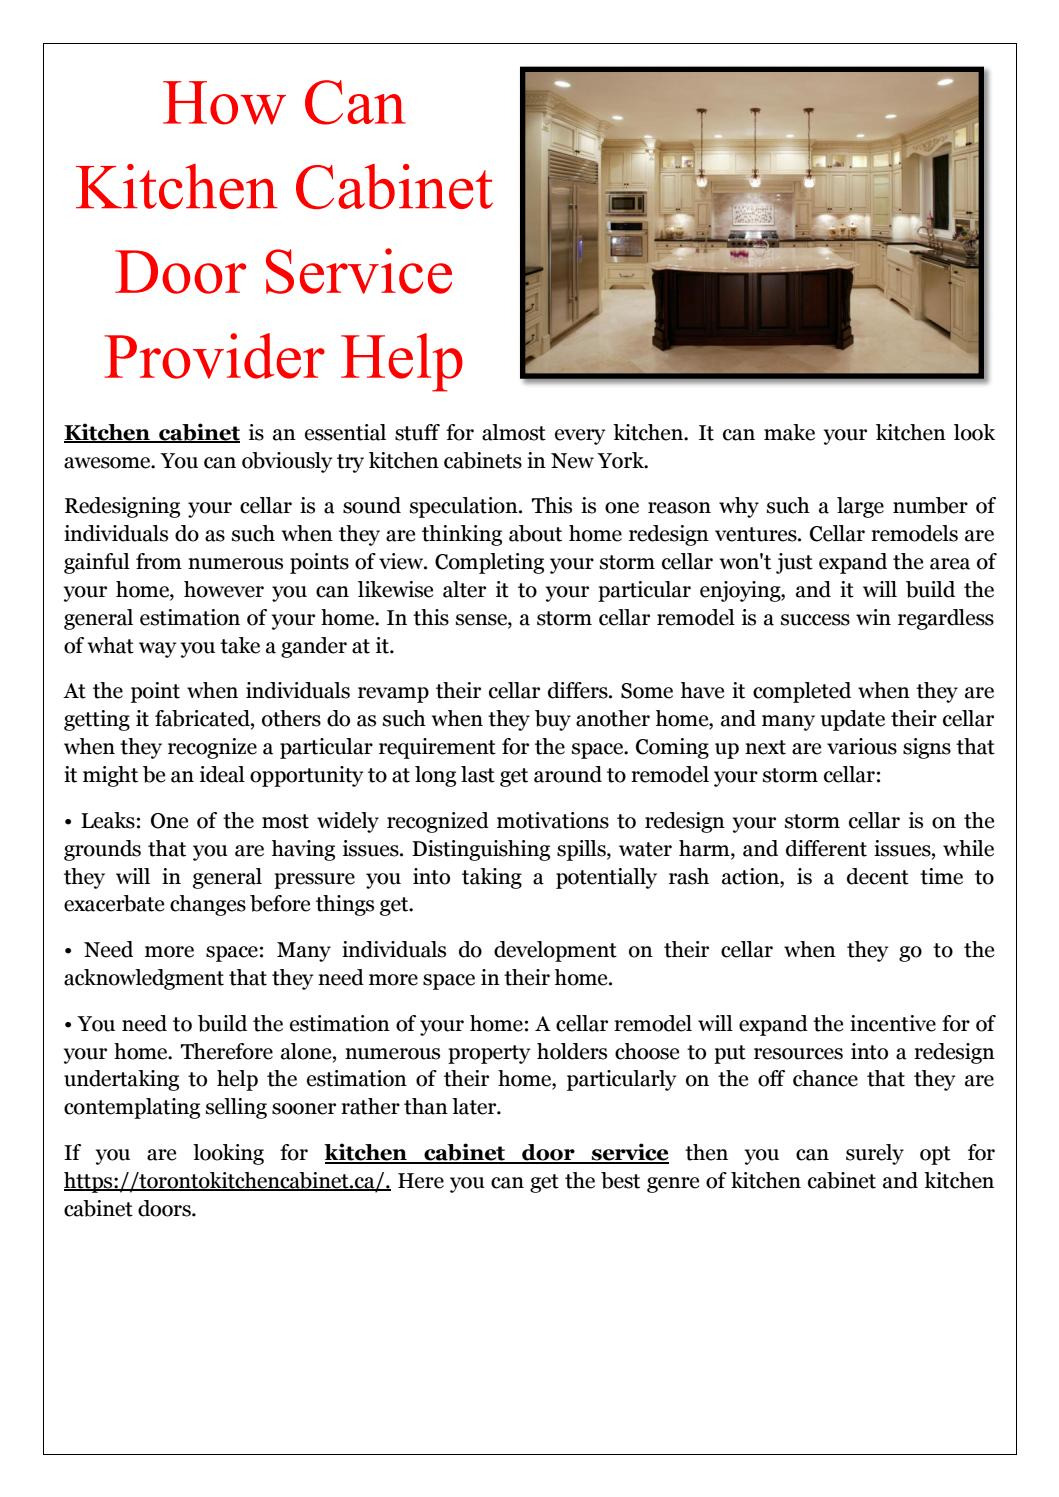 how can kitchen cabinet door service provider help